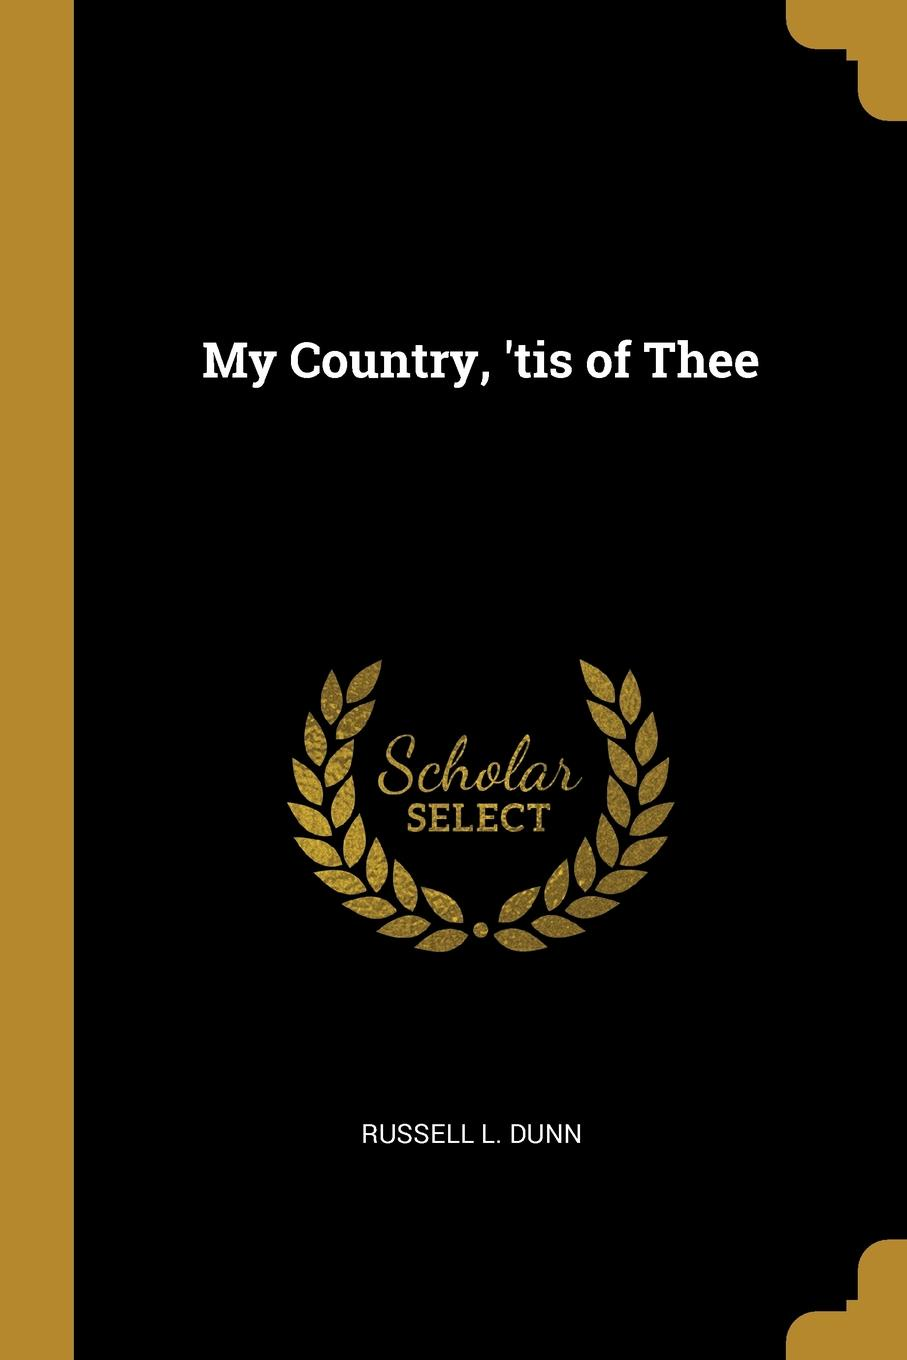 My Country, .tis of Thee